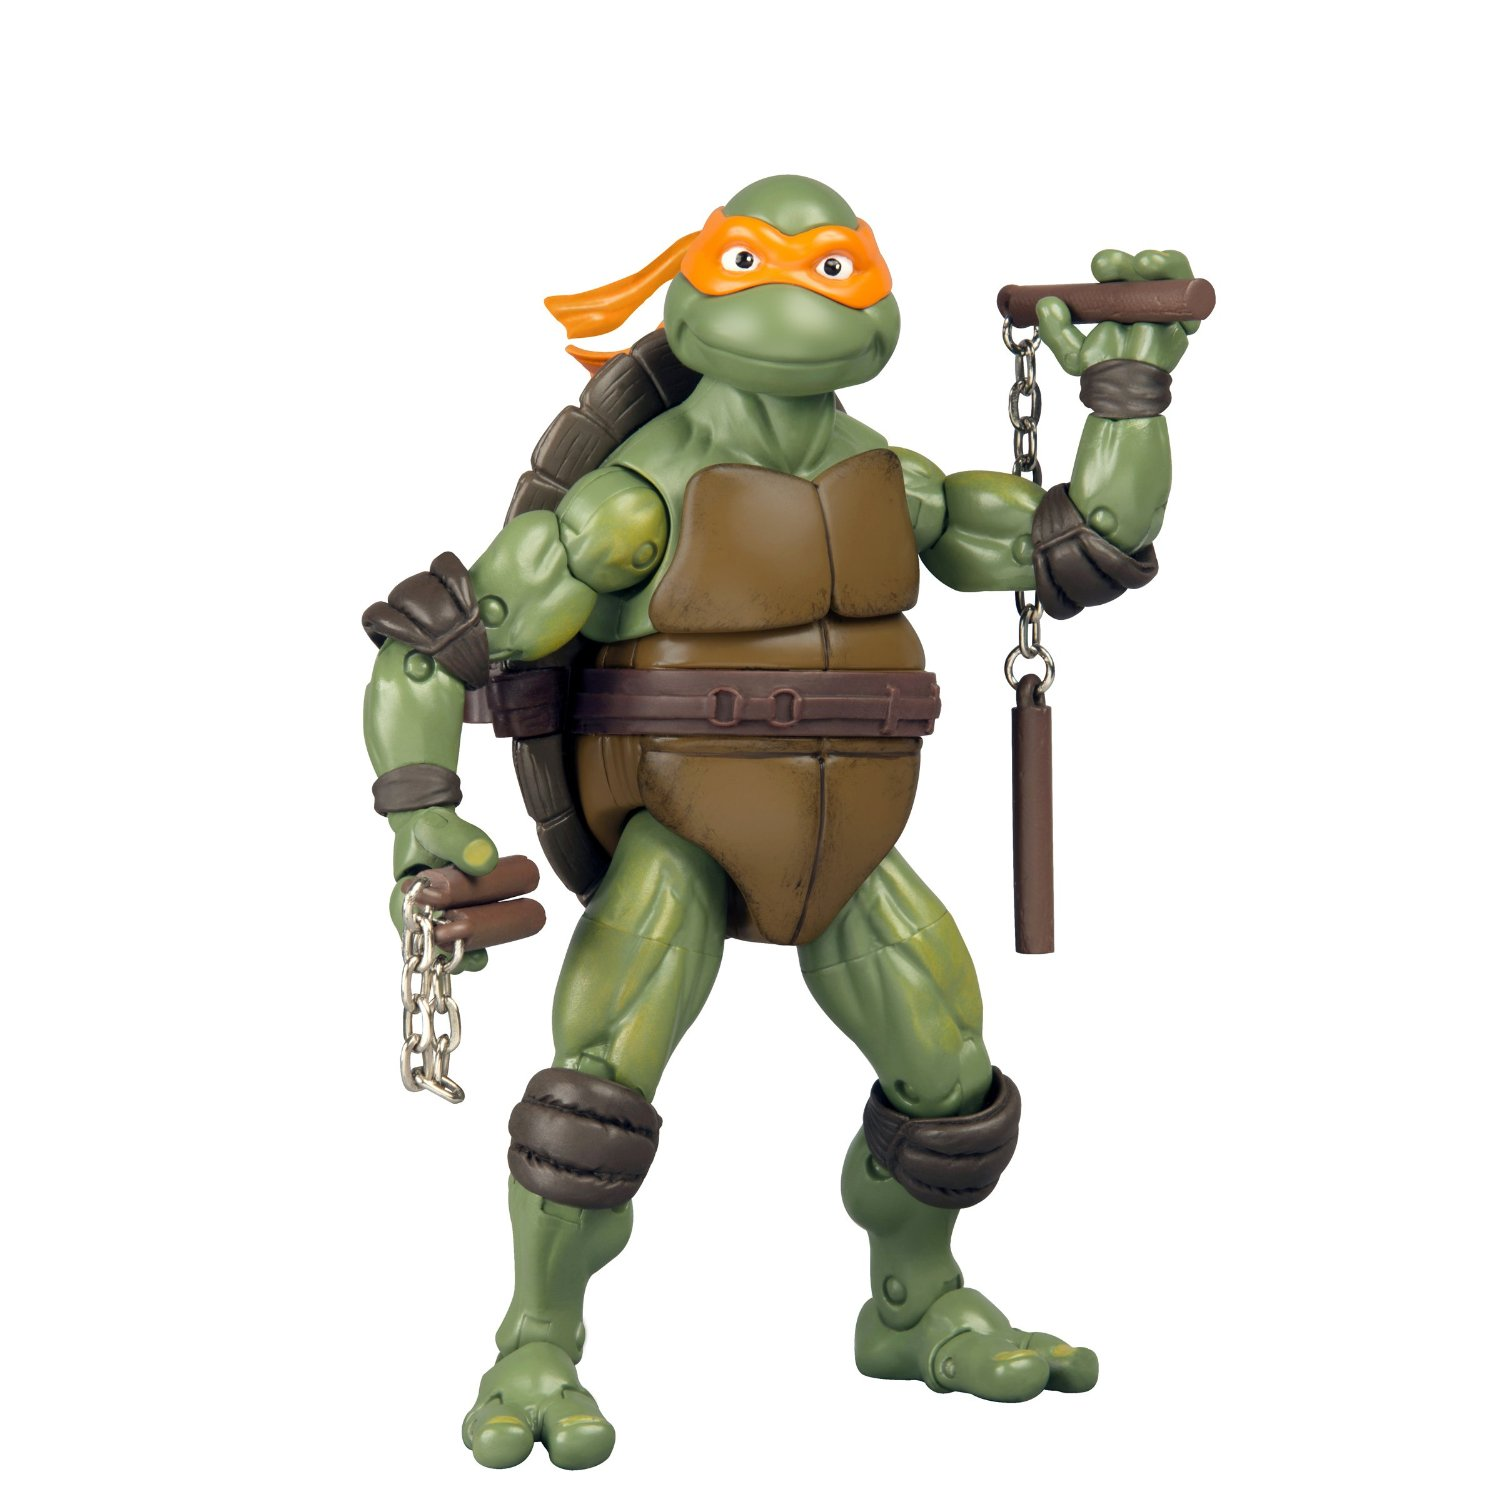 Tmnt Movie Toys : Top ninja turtles toys of crooked turtle gang